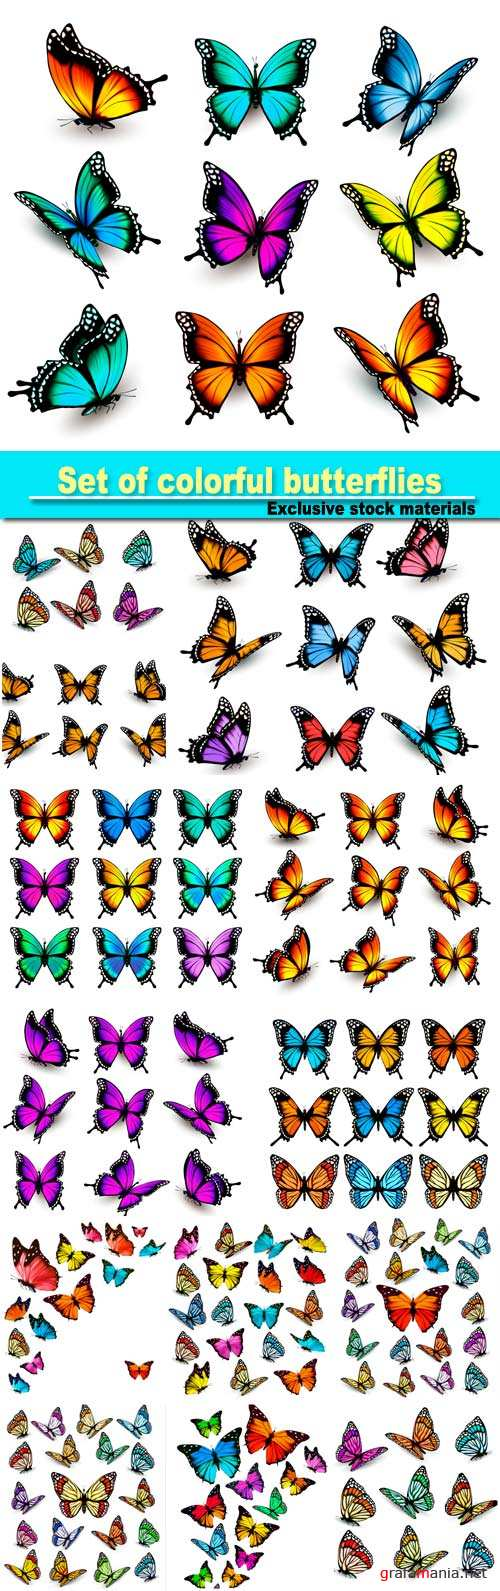 Set of colorful butterflies vector #7